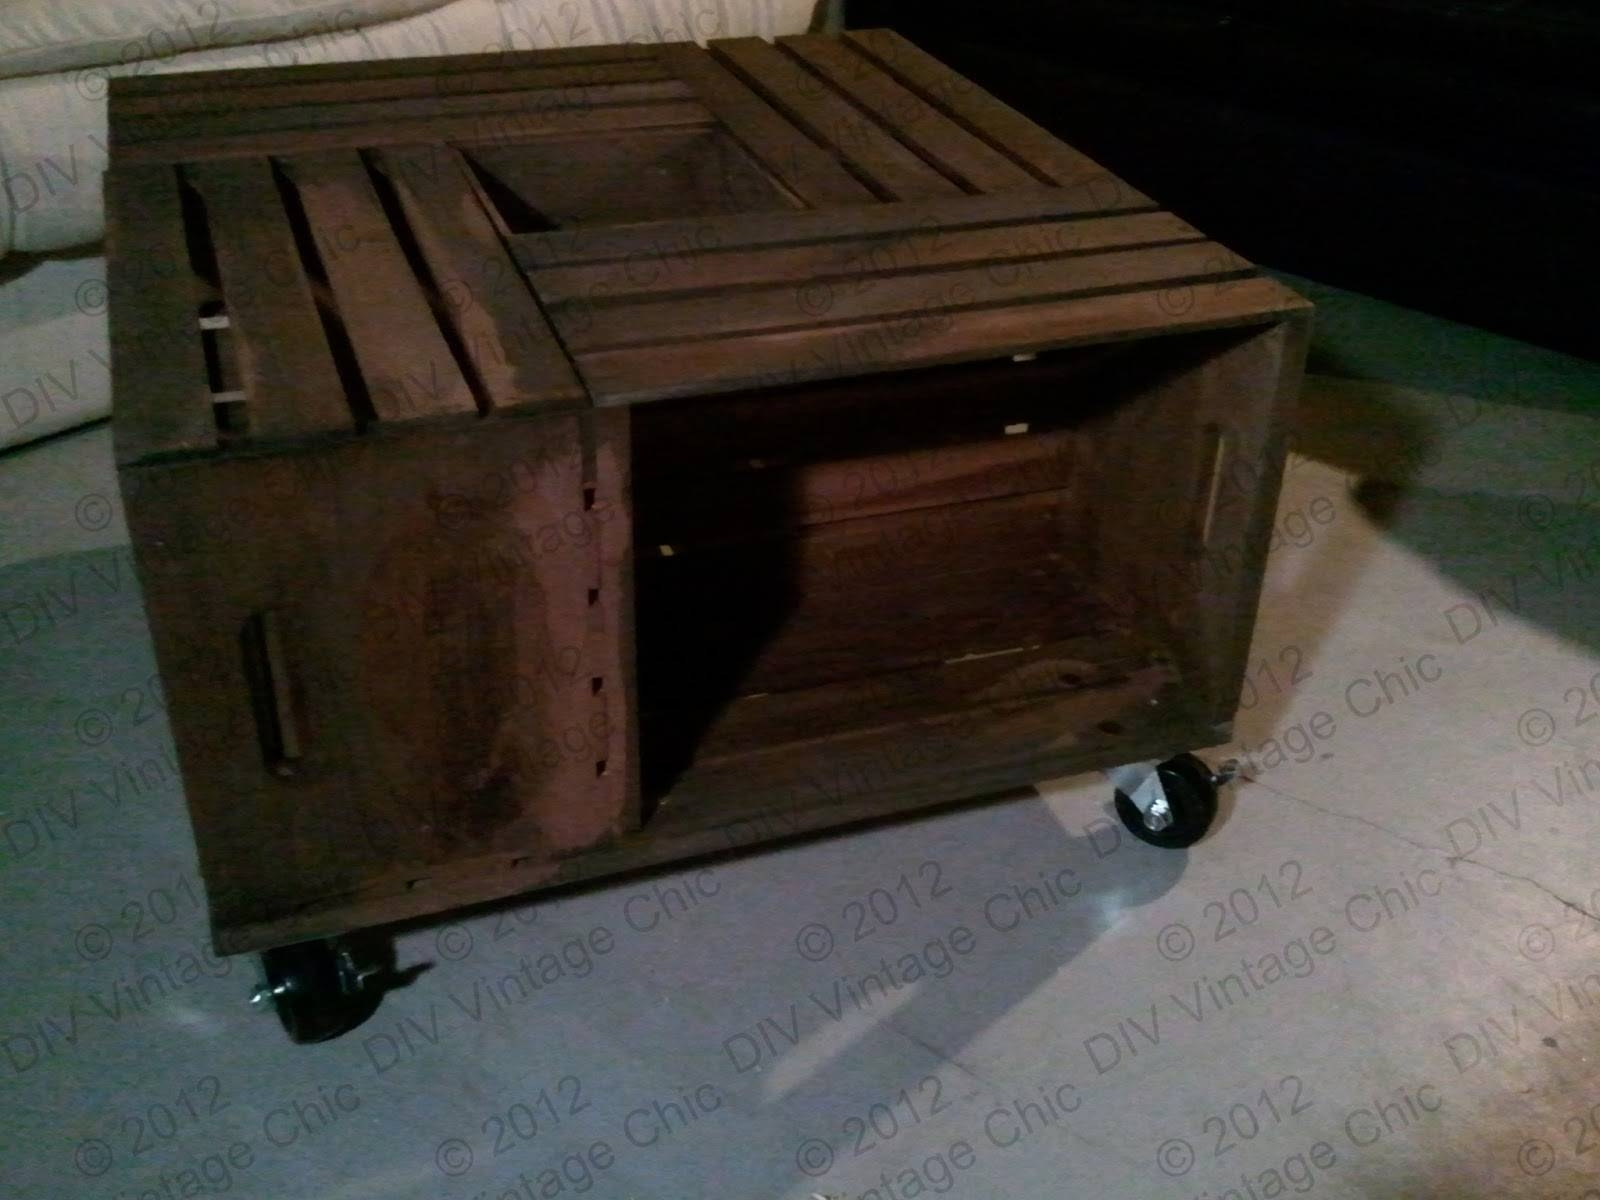 Industrial Rustic Coffee Table With Wheels | Design Ideas And Decor for Rustic Coffee Table With Wheels (Image 19 of 30)